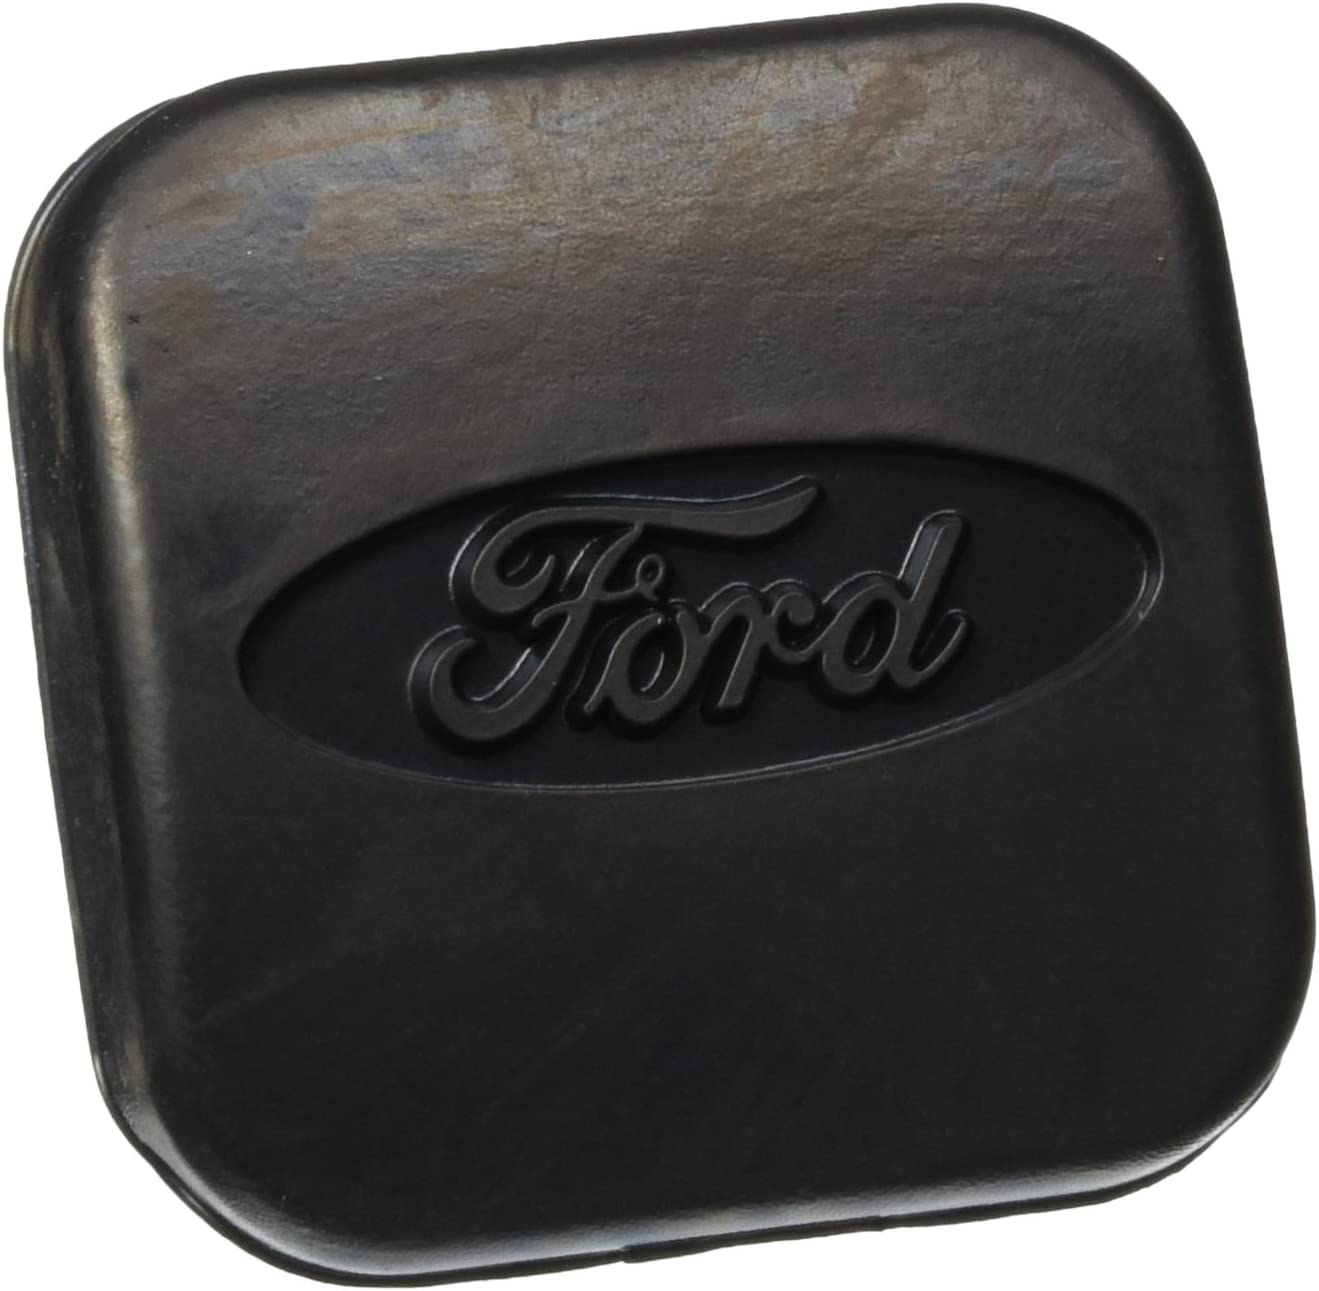 fit Ford I life Trailer Hitch Tube Cover Plug Cap for Ford,Rubber Receiver Tube Hitch Plug,F150 F250 Trailer Hitch Cover